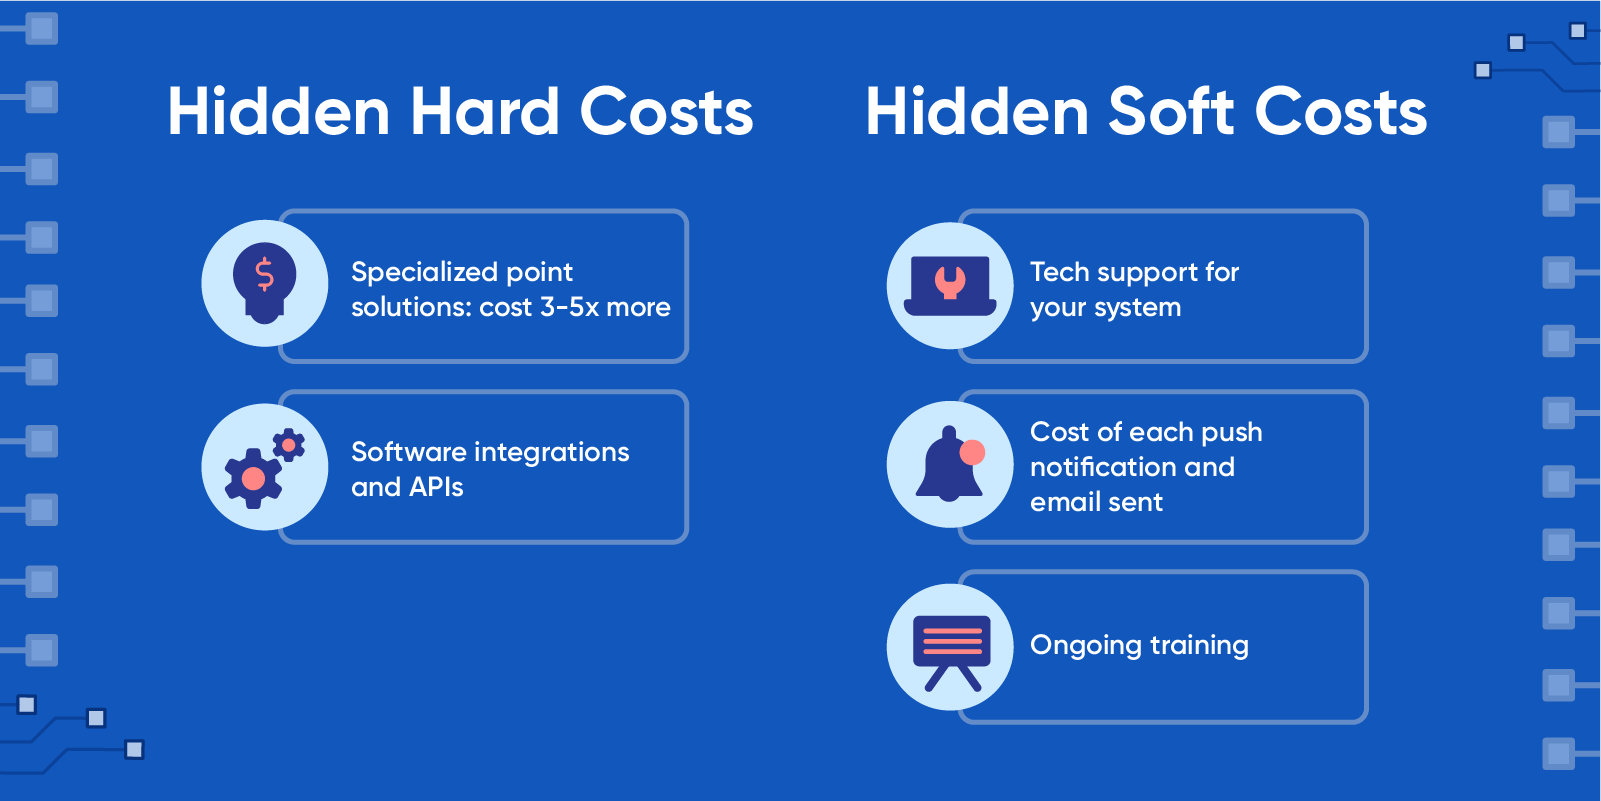 What are hard and soft hidden costs?